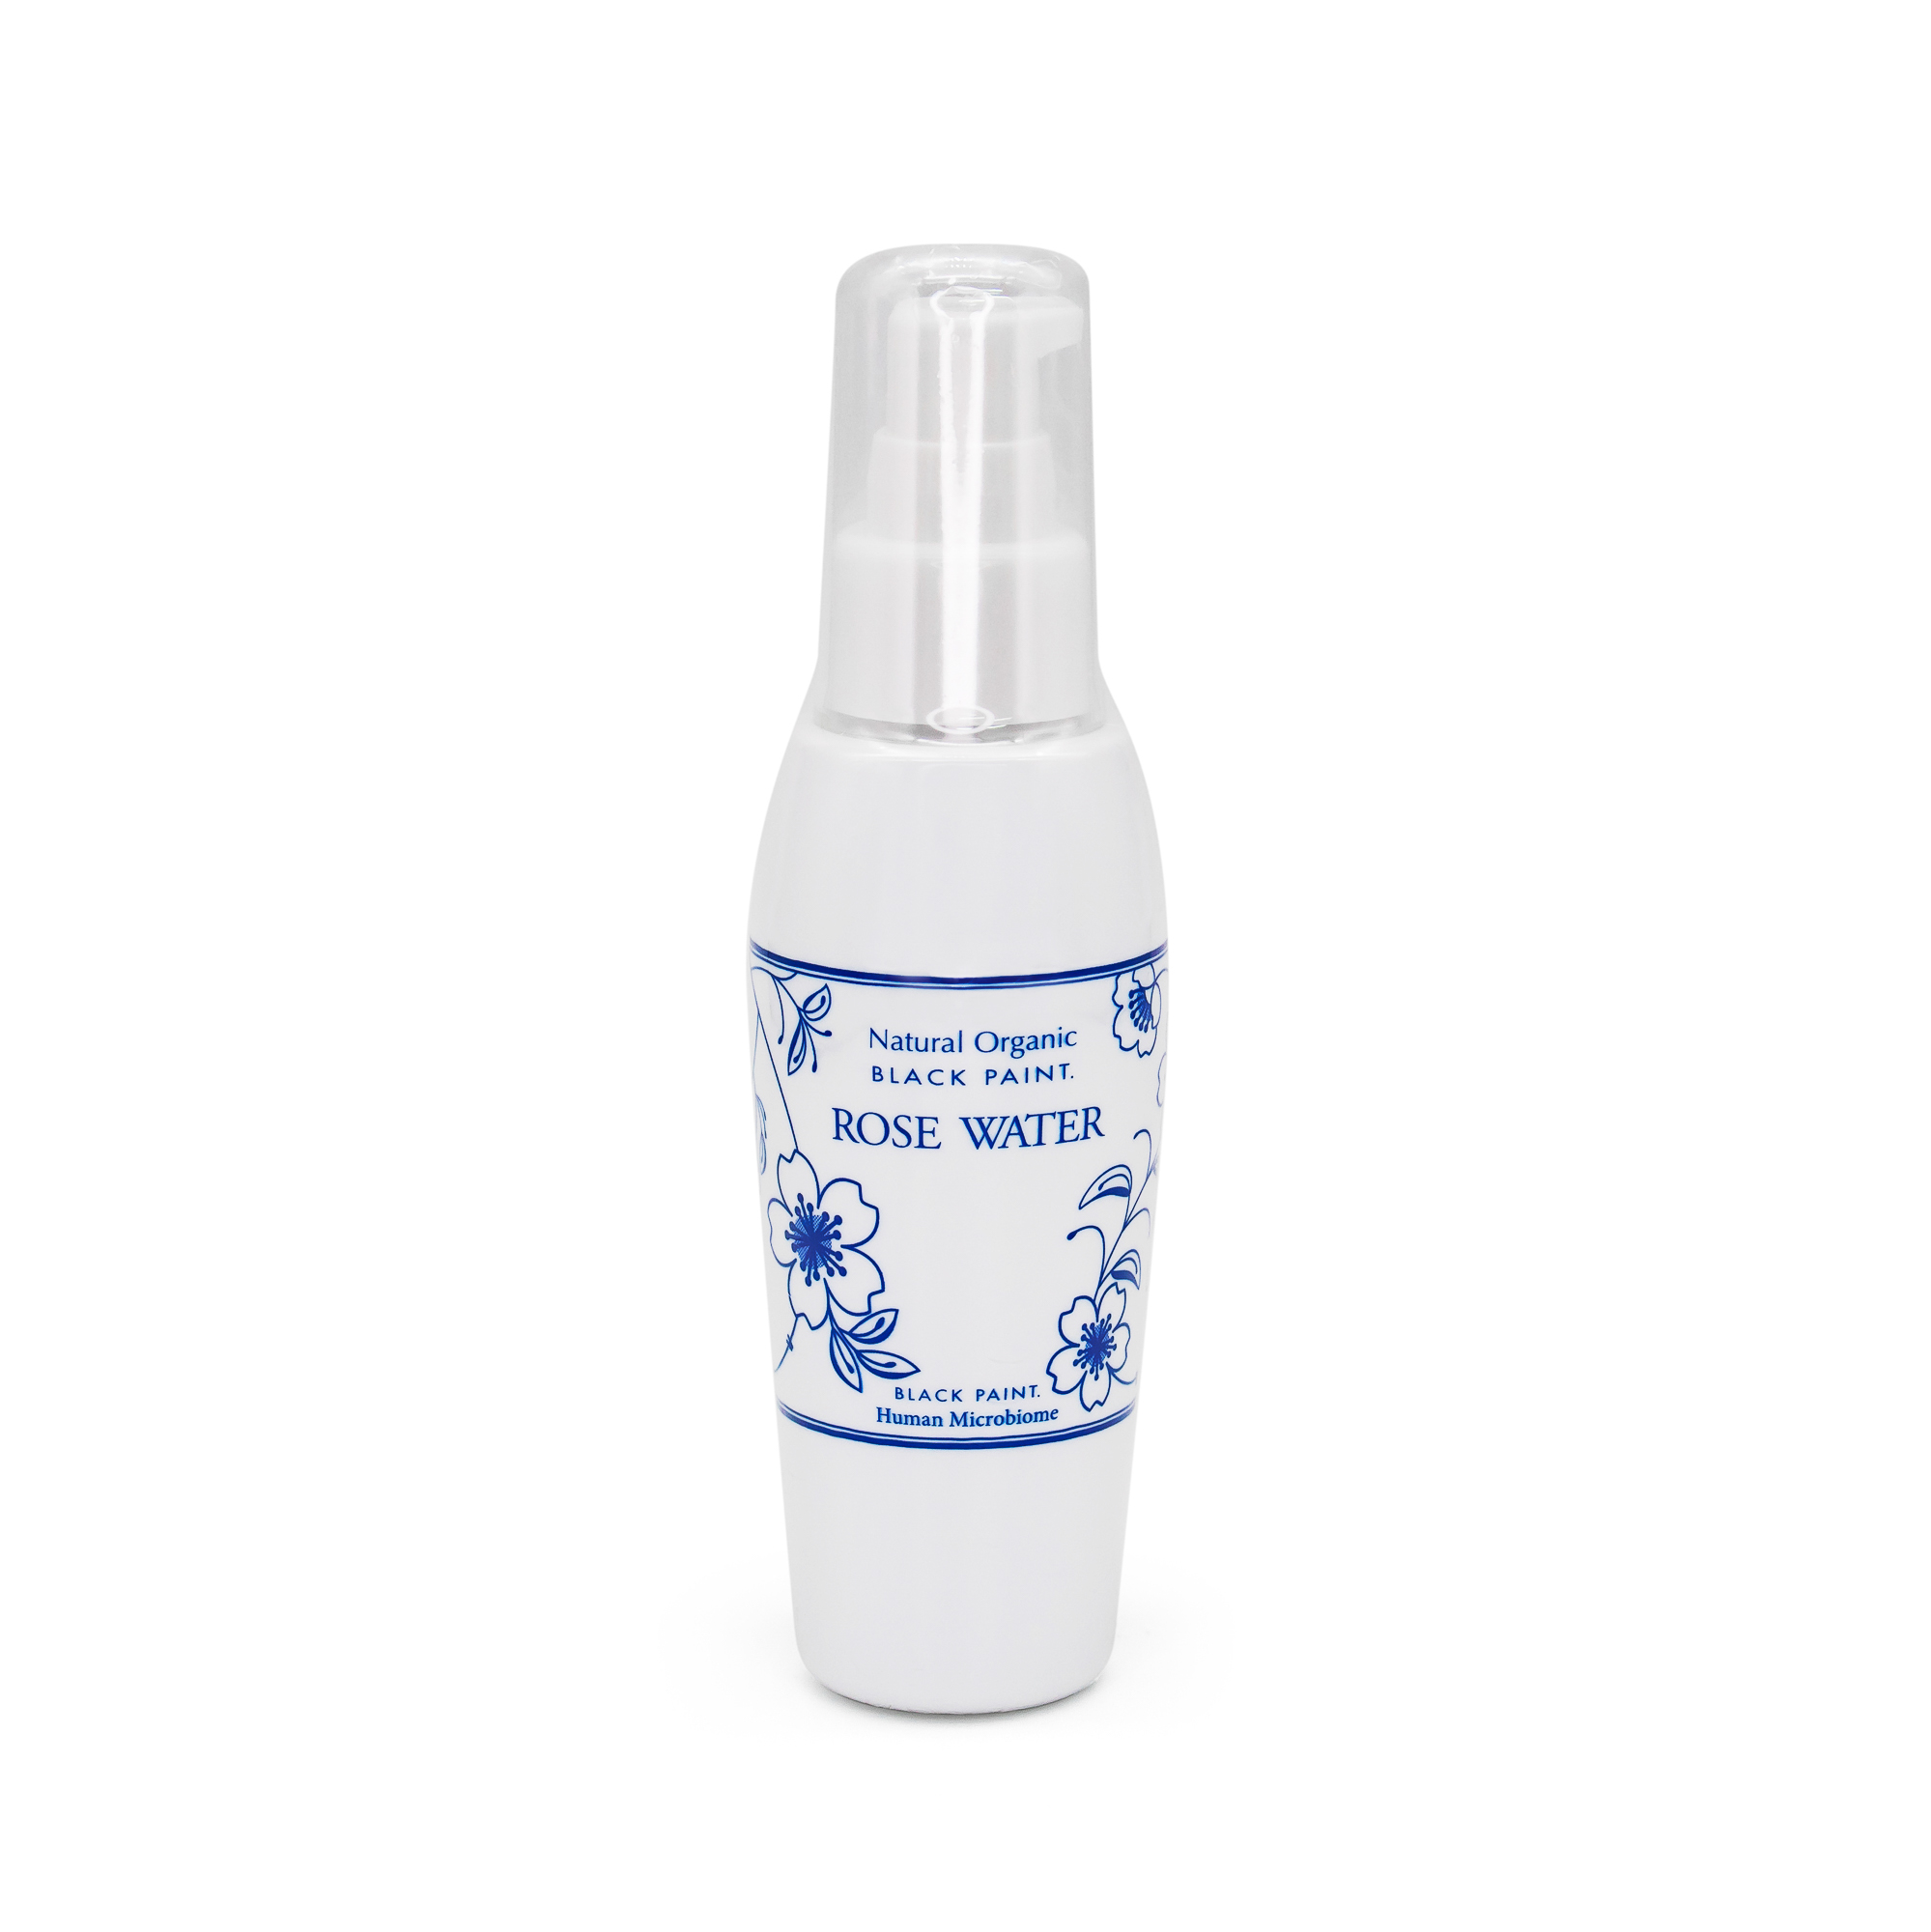 Rose Water 100ml with Human Microbiome - front